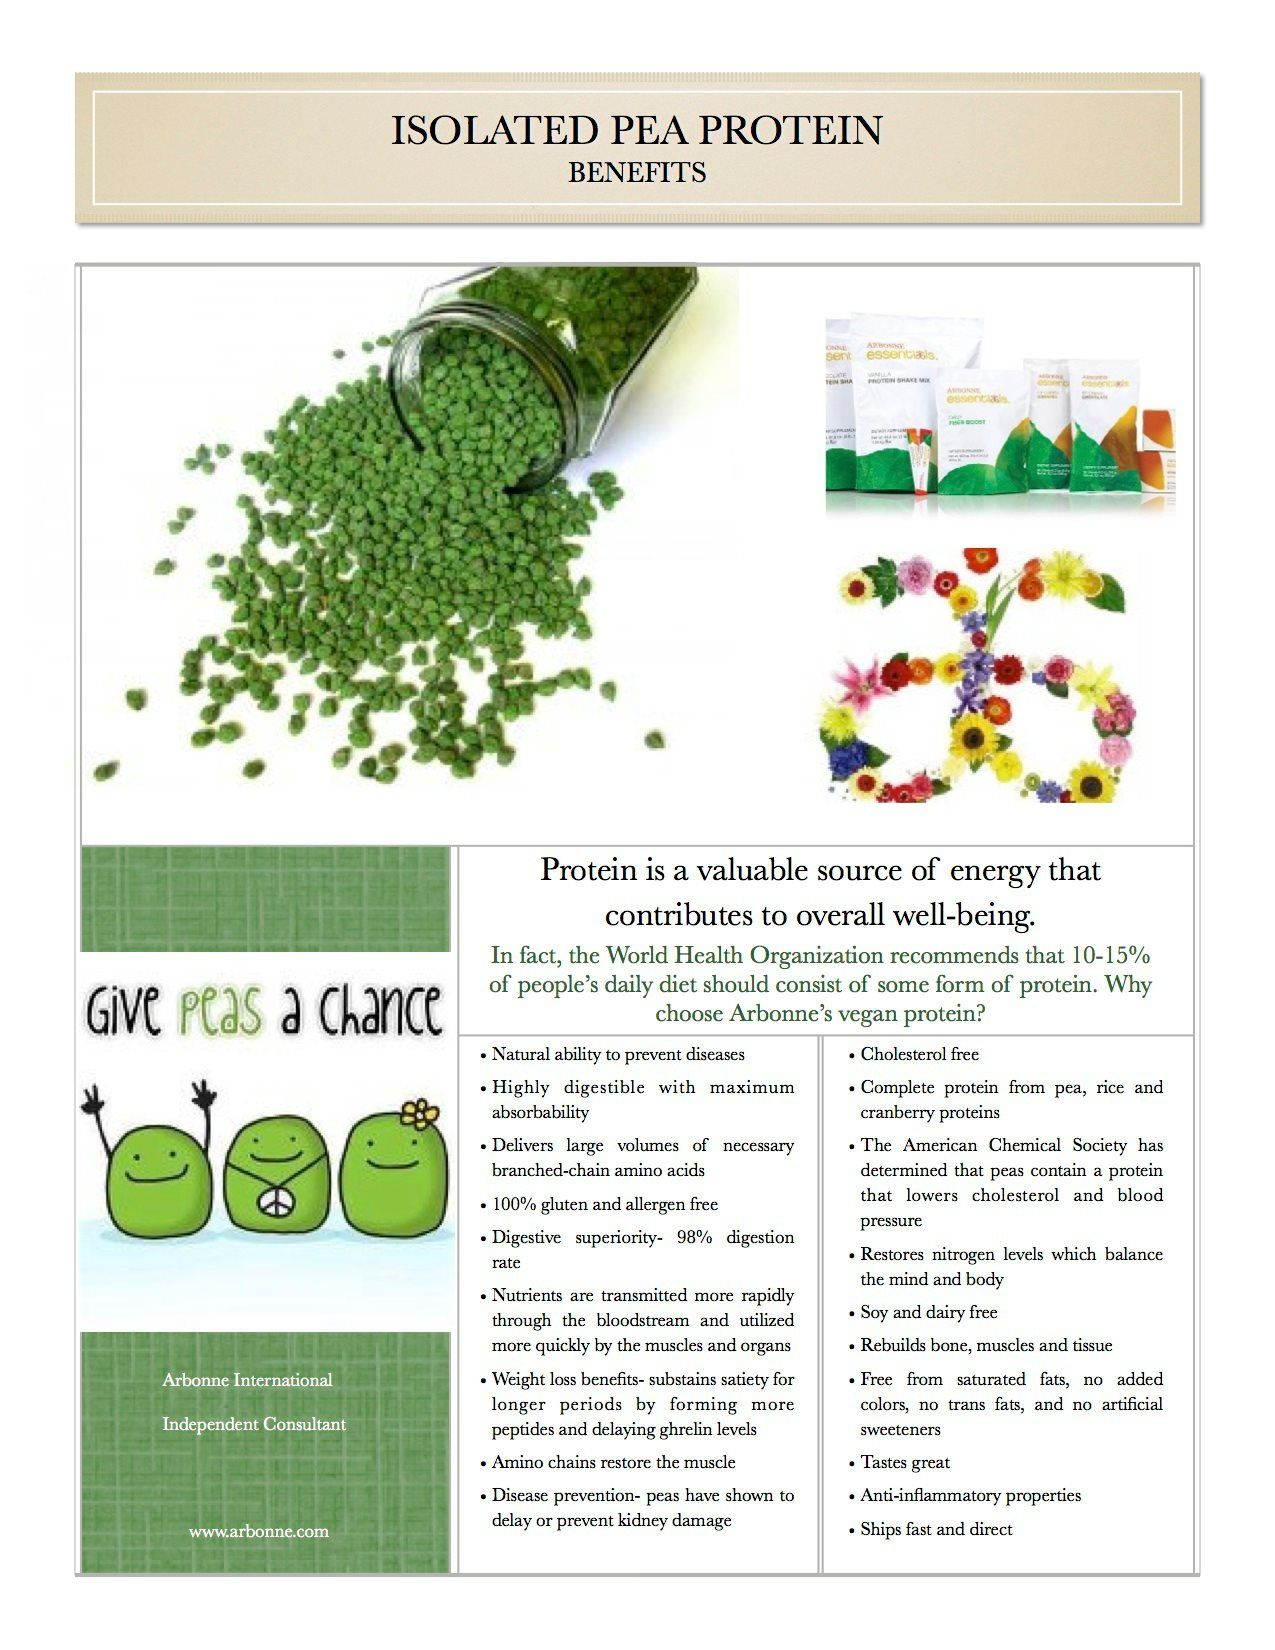 Arbonne S Vegan Protein Meal Replacements Vanilla Or Chocolate 20 Grams Of Vegan Protein Made From Pea And Rice 2 Arbonne Protein Arbonne Nutrition Arbonne